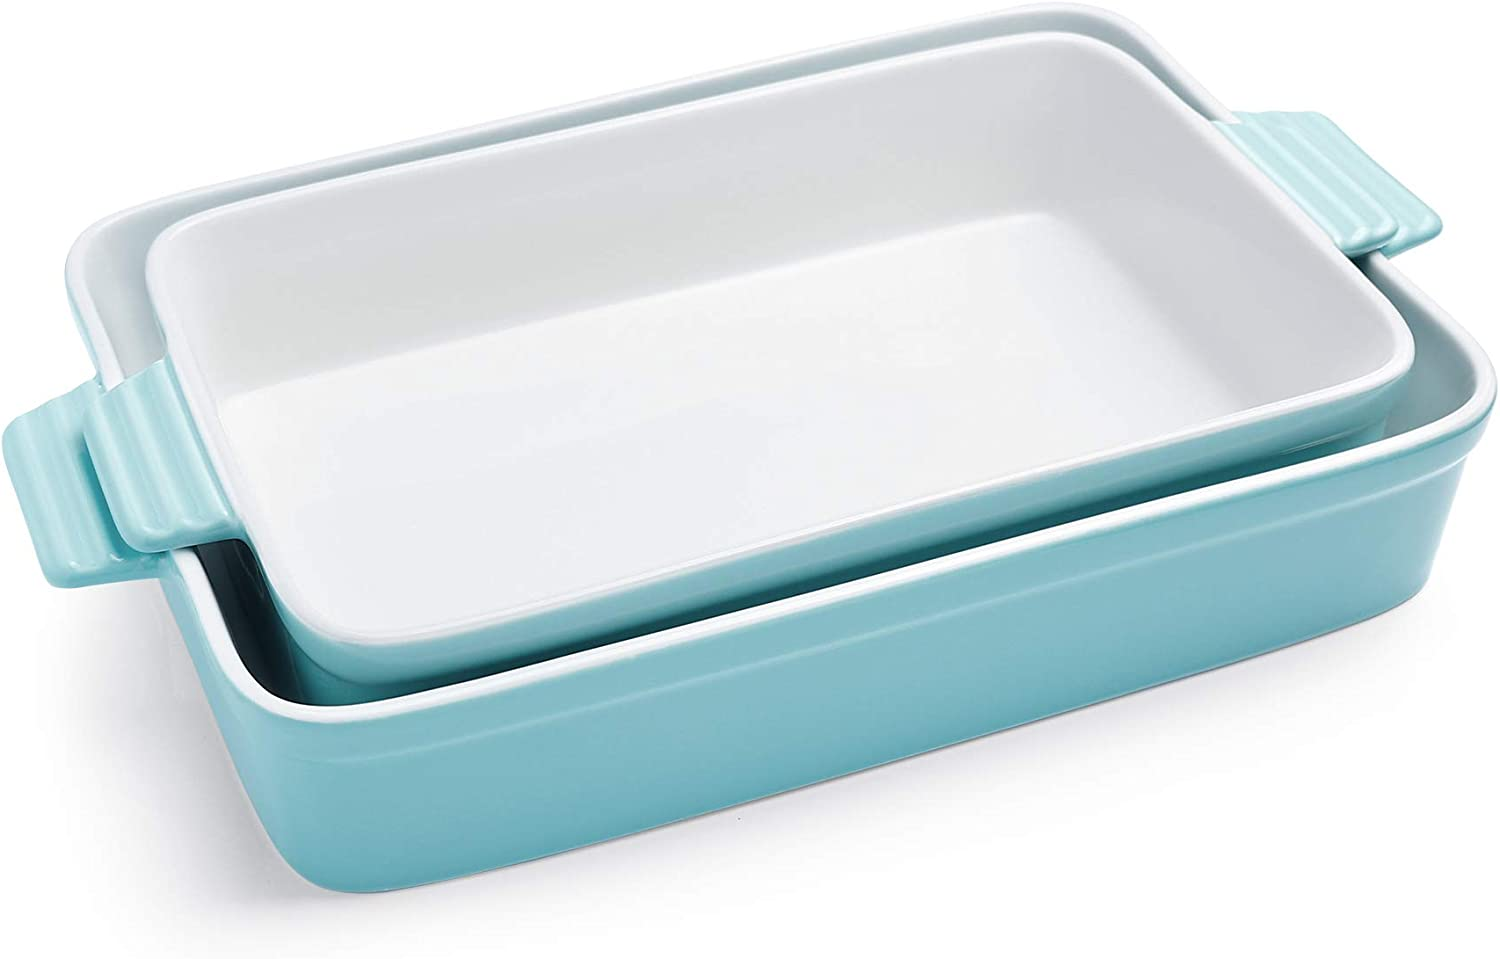 Sweese 520.202 Porcelain Baking Dishes Pans Non-stick Lasagna NEW before selling shop